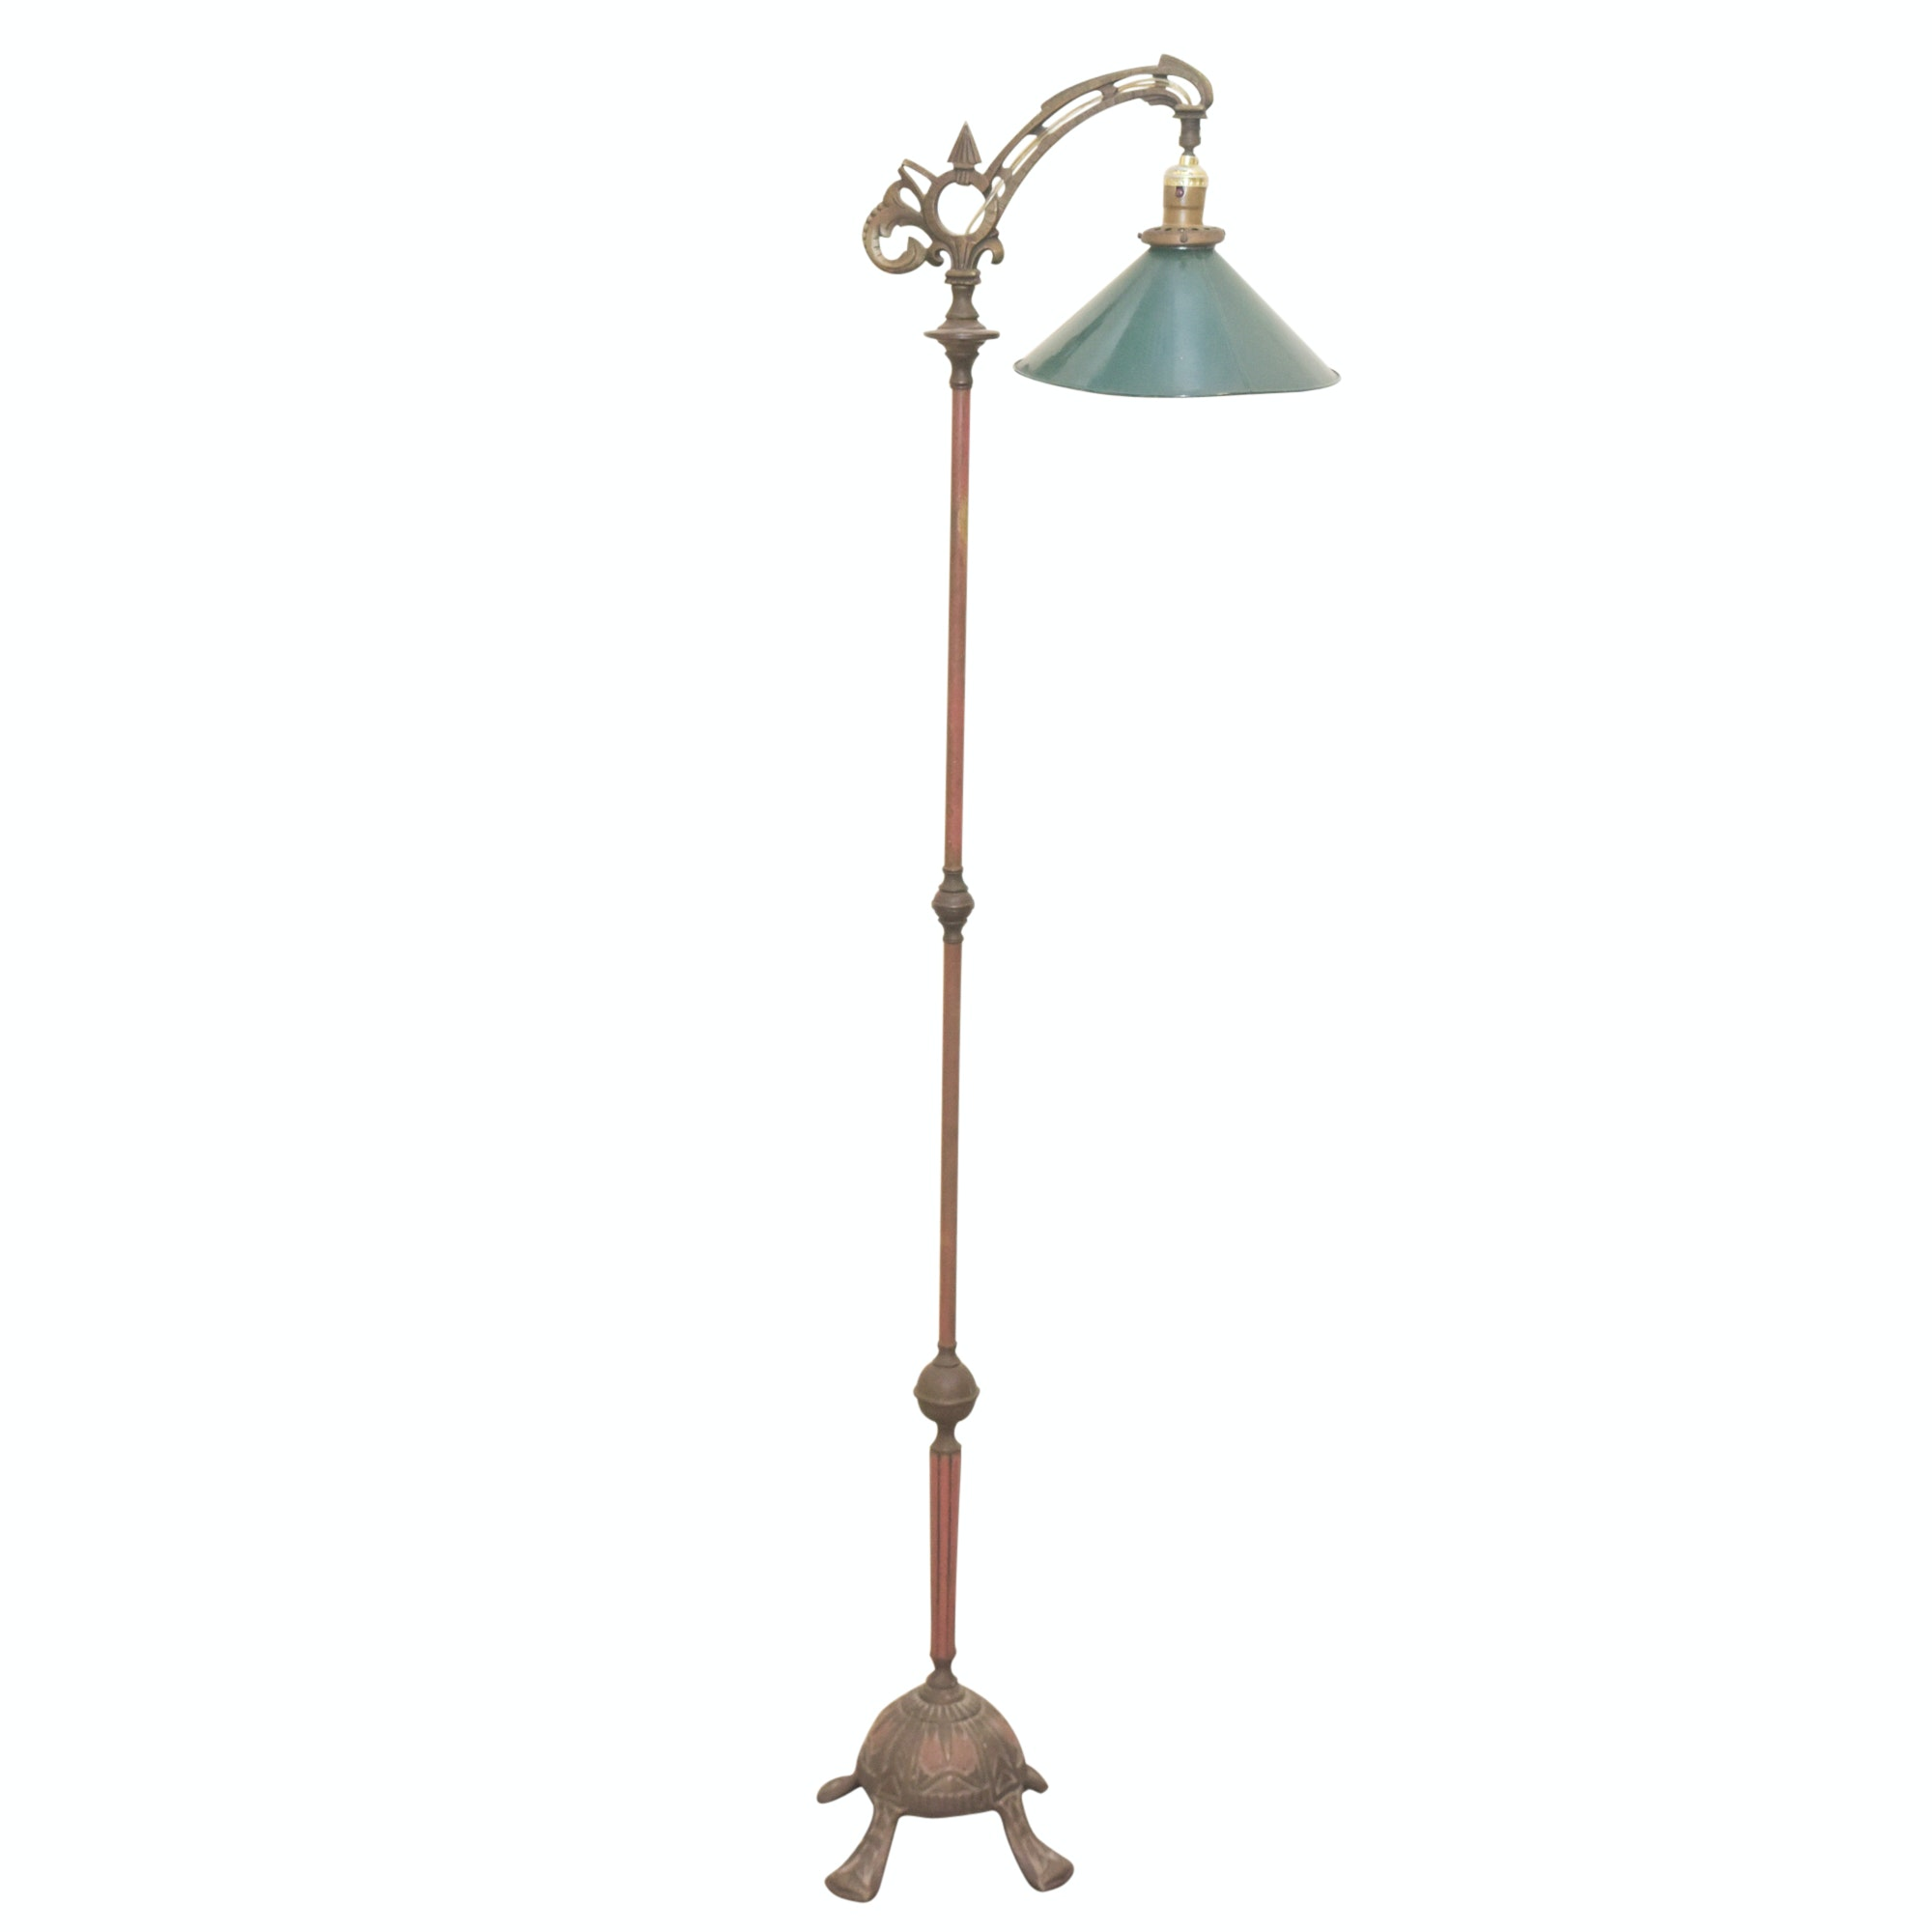 Vintage Art Deco Style Bent Arm Floor Lamp with Green Metal Shade